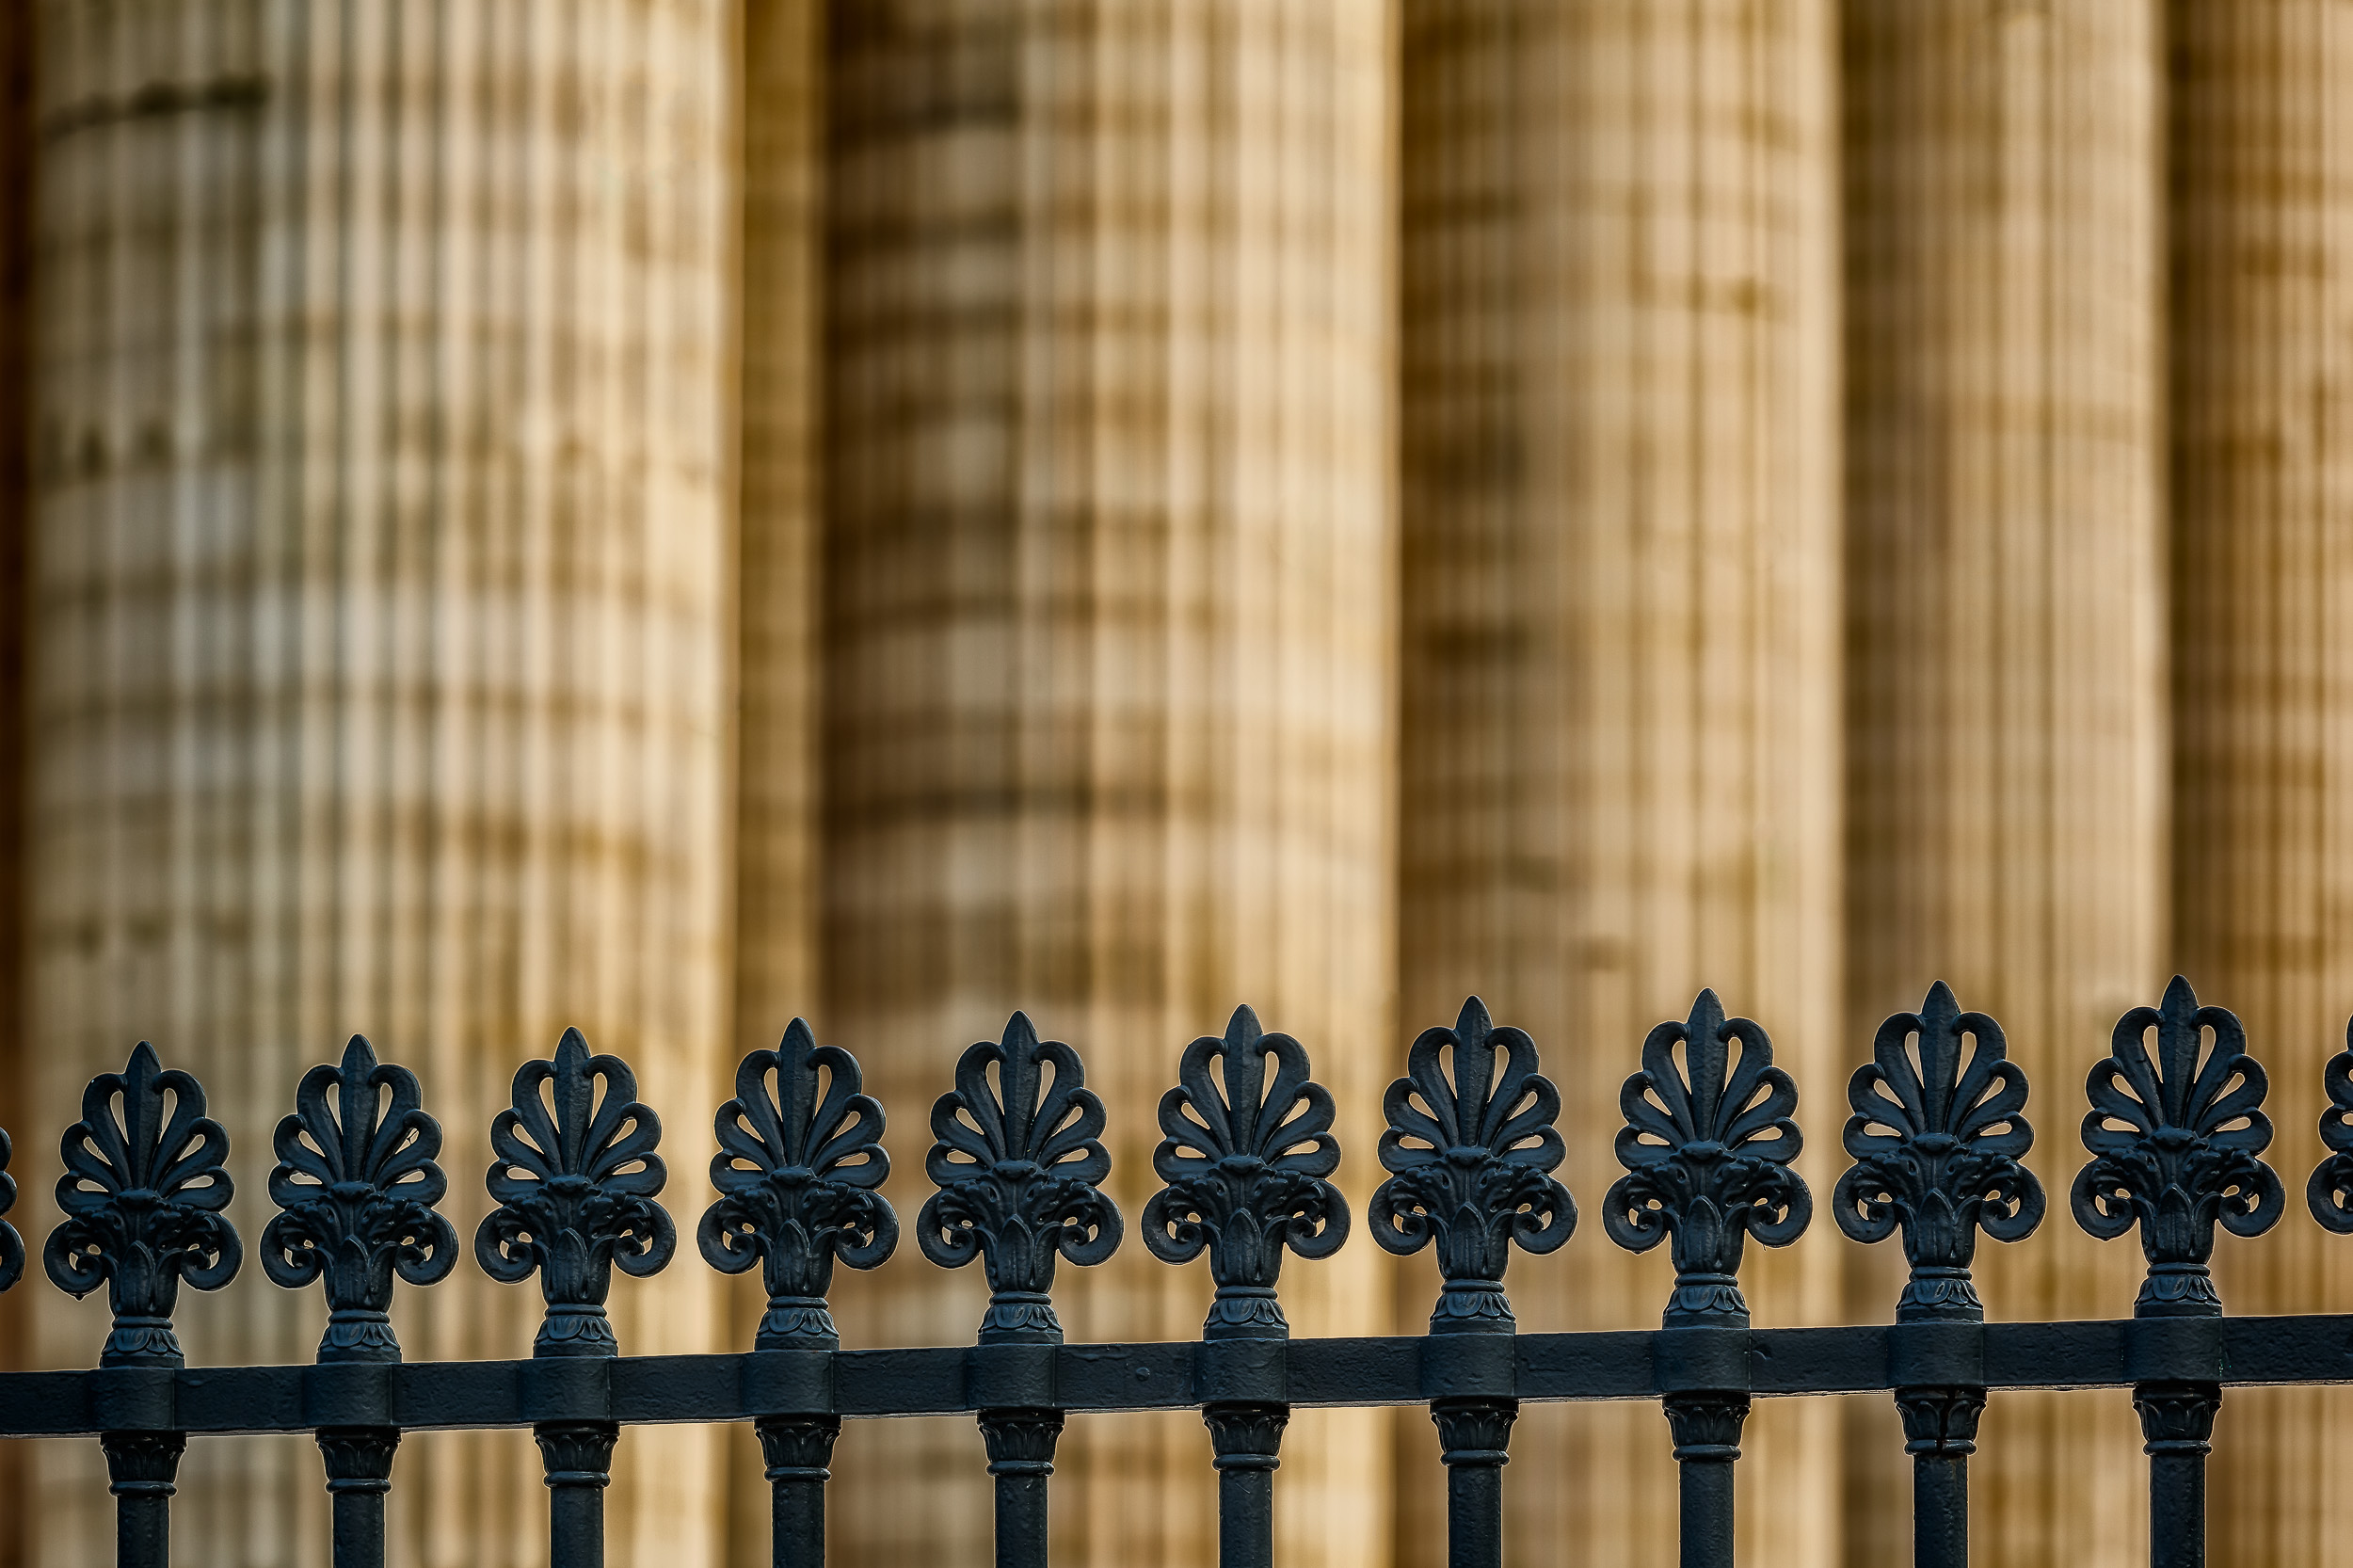 A  fence line , marking a boundary between the pavement and an historically important structure becomes an important  element of composition  in this image of the  Pantheon  in  Paris, France .